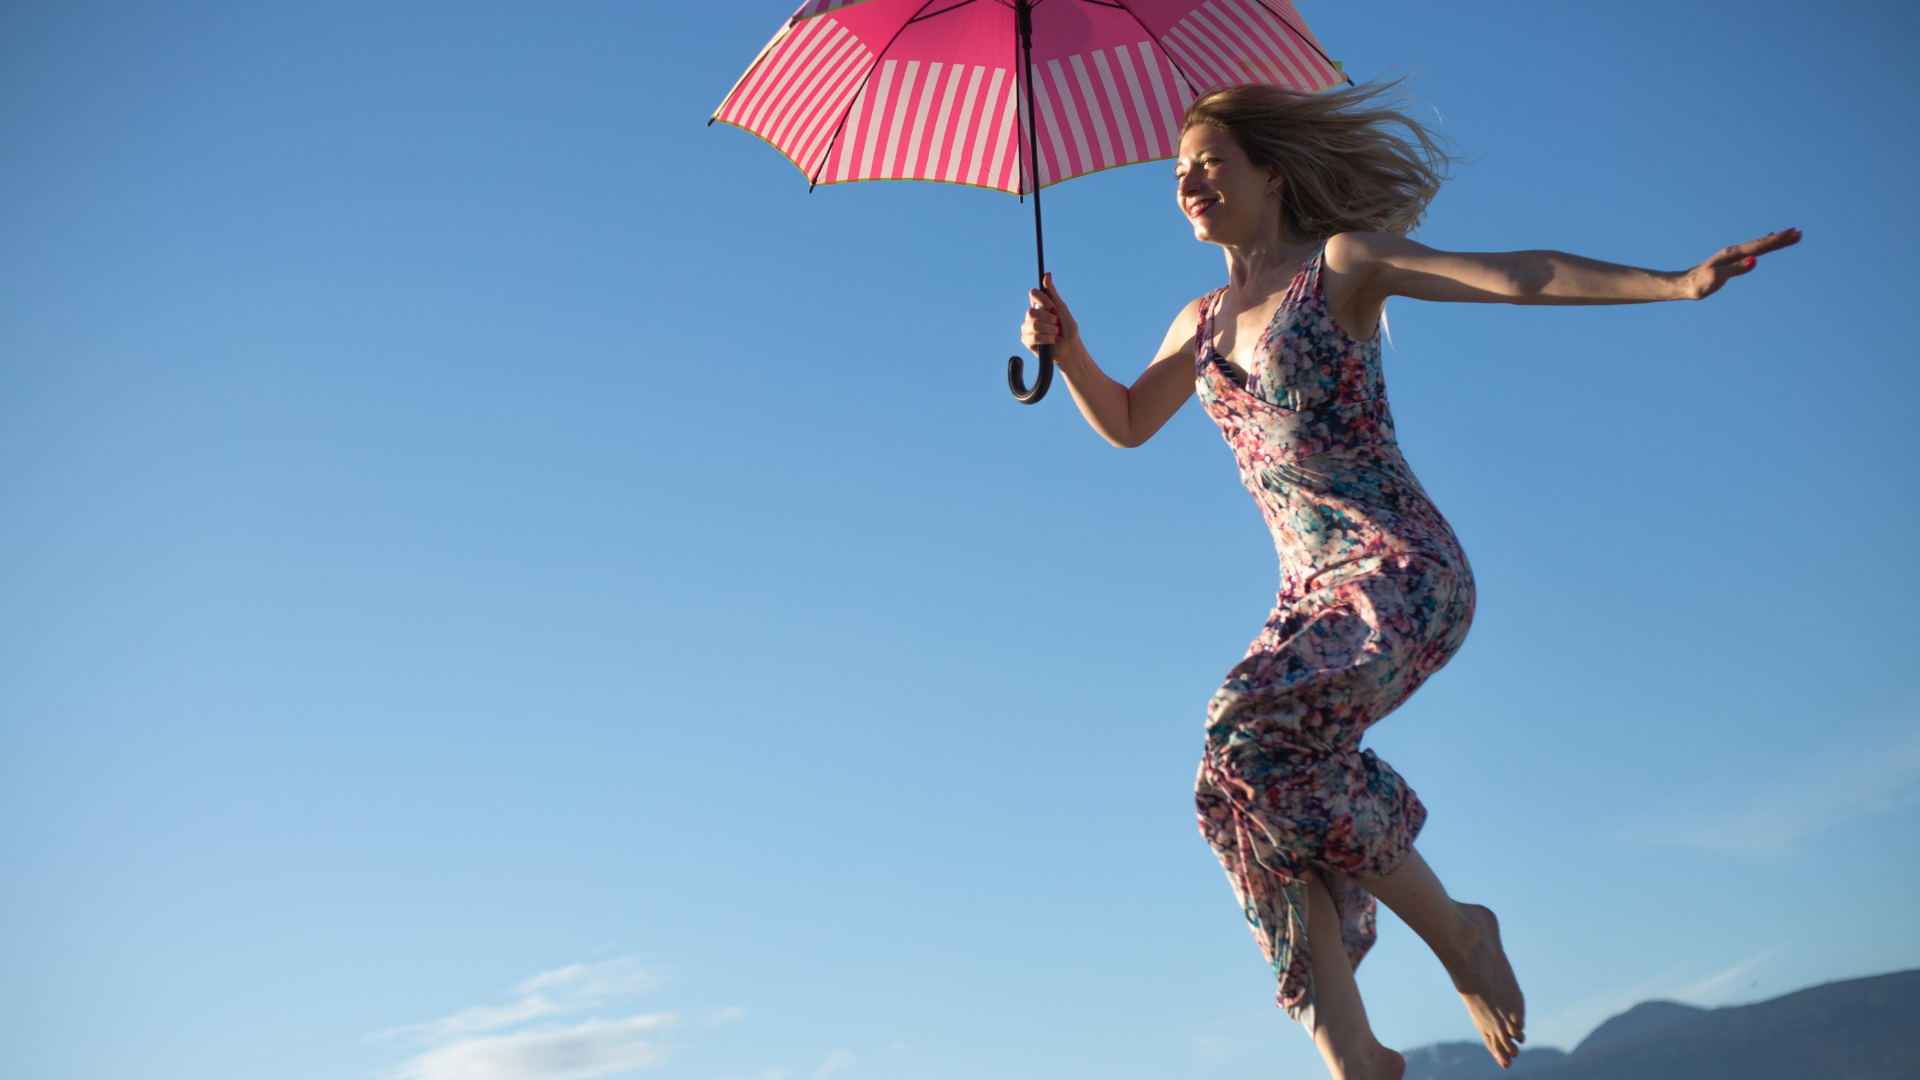 woman up in the air holding a pink umbrella